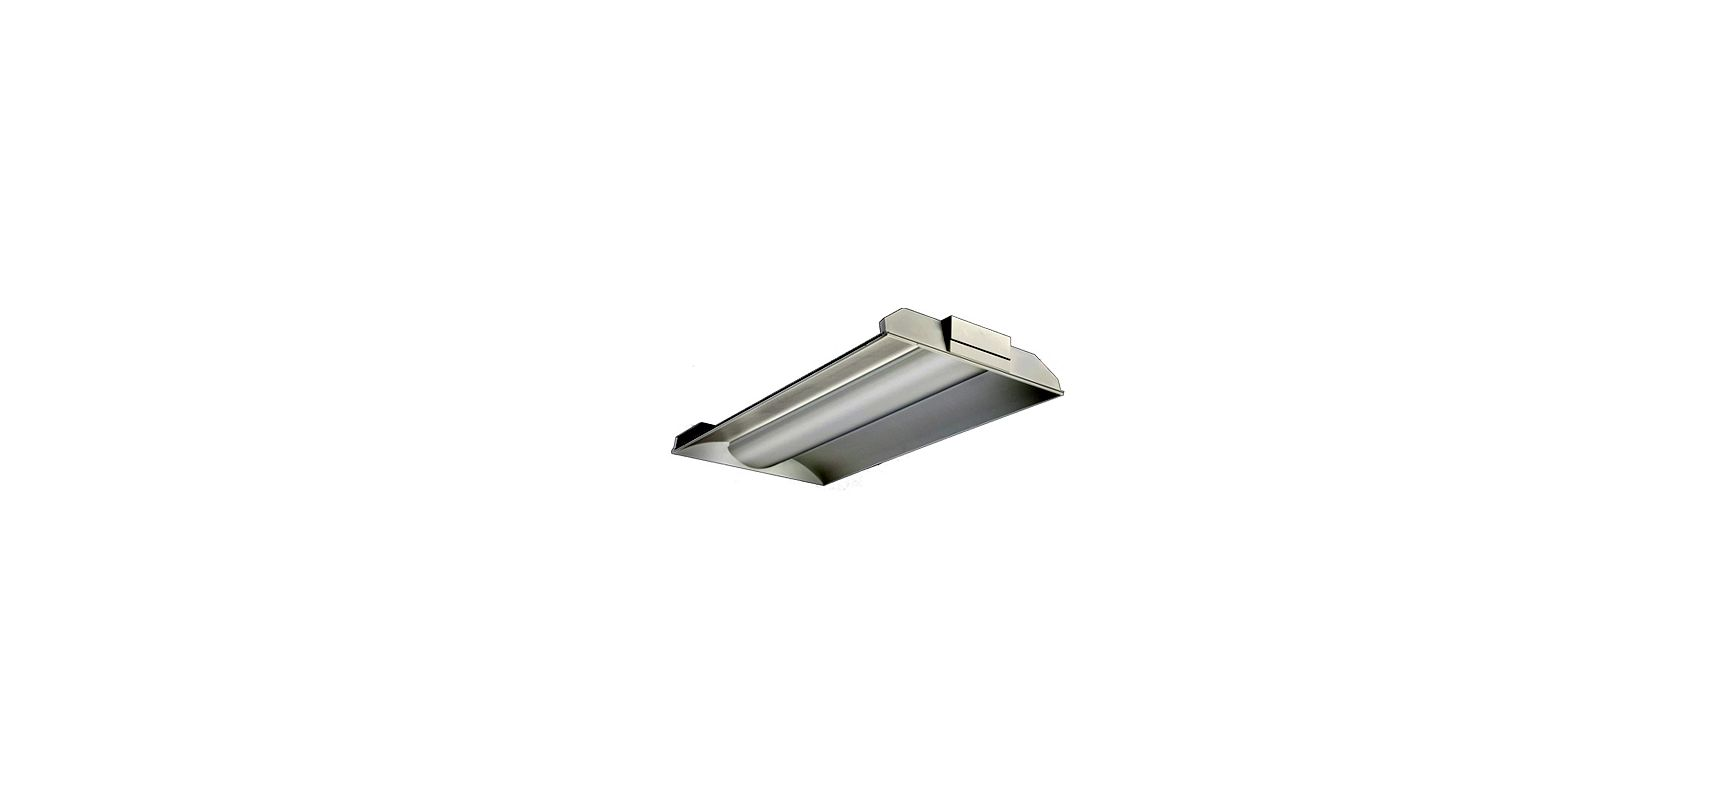 Lithonia Lighting 2VT8 3 32 ADP MVOLT GEB10PS 3 Light Linear Recessed Sale $171.75 ITEM: bci2636024 ID#:2VT8 3 32 ADP MVOLT GEB10PS UPC: 784231661536 :